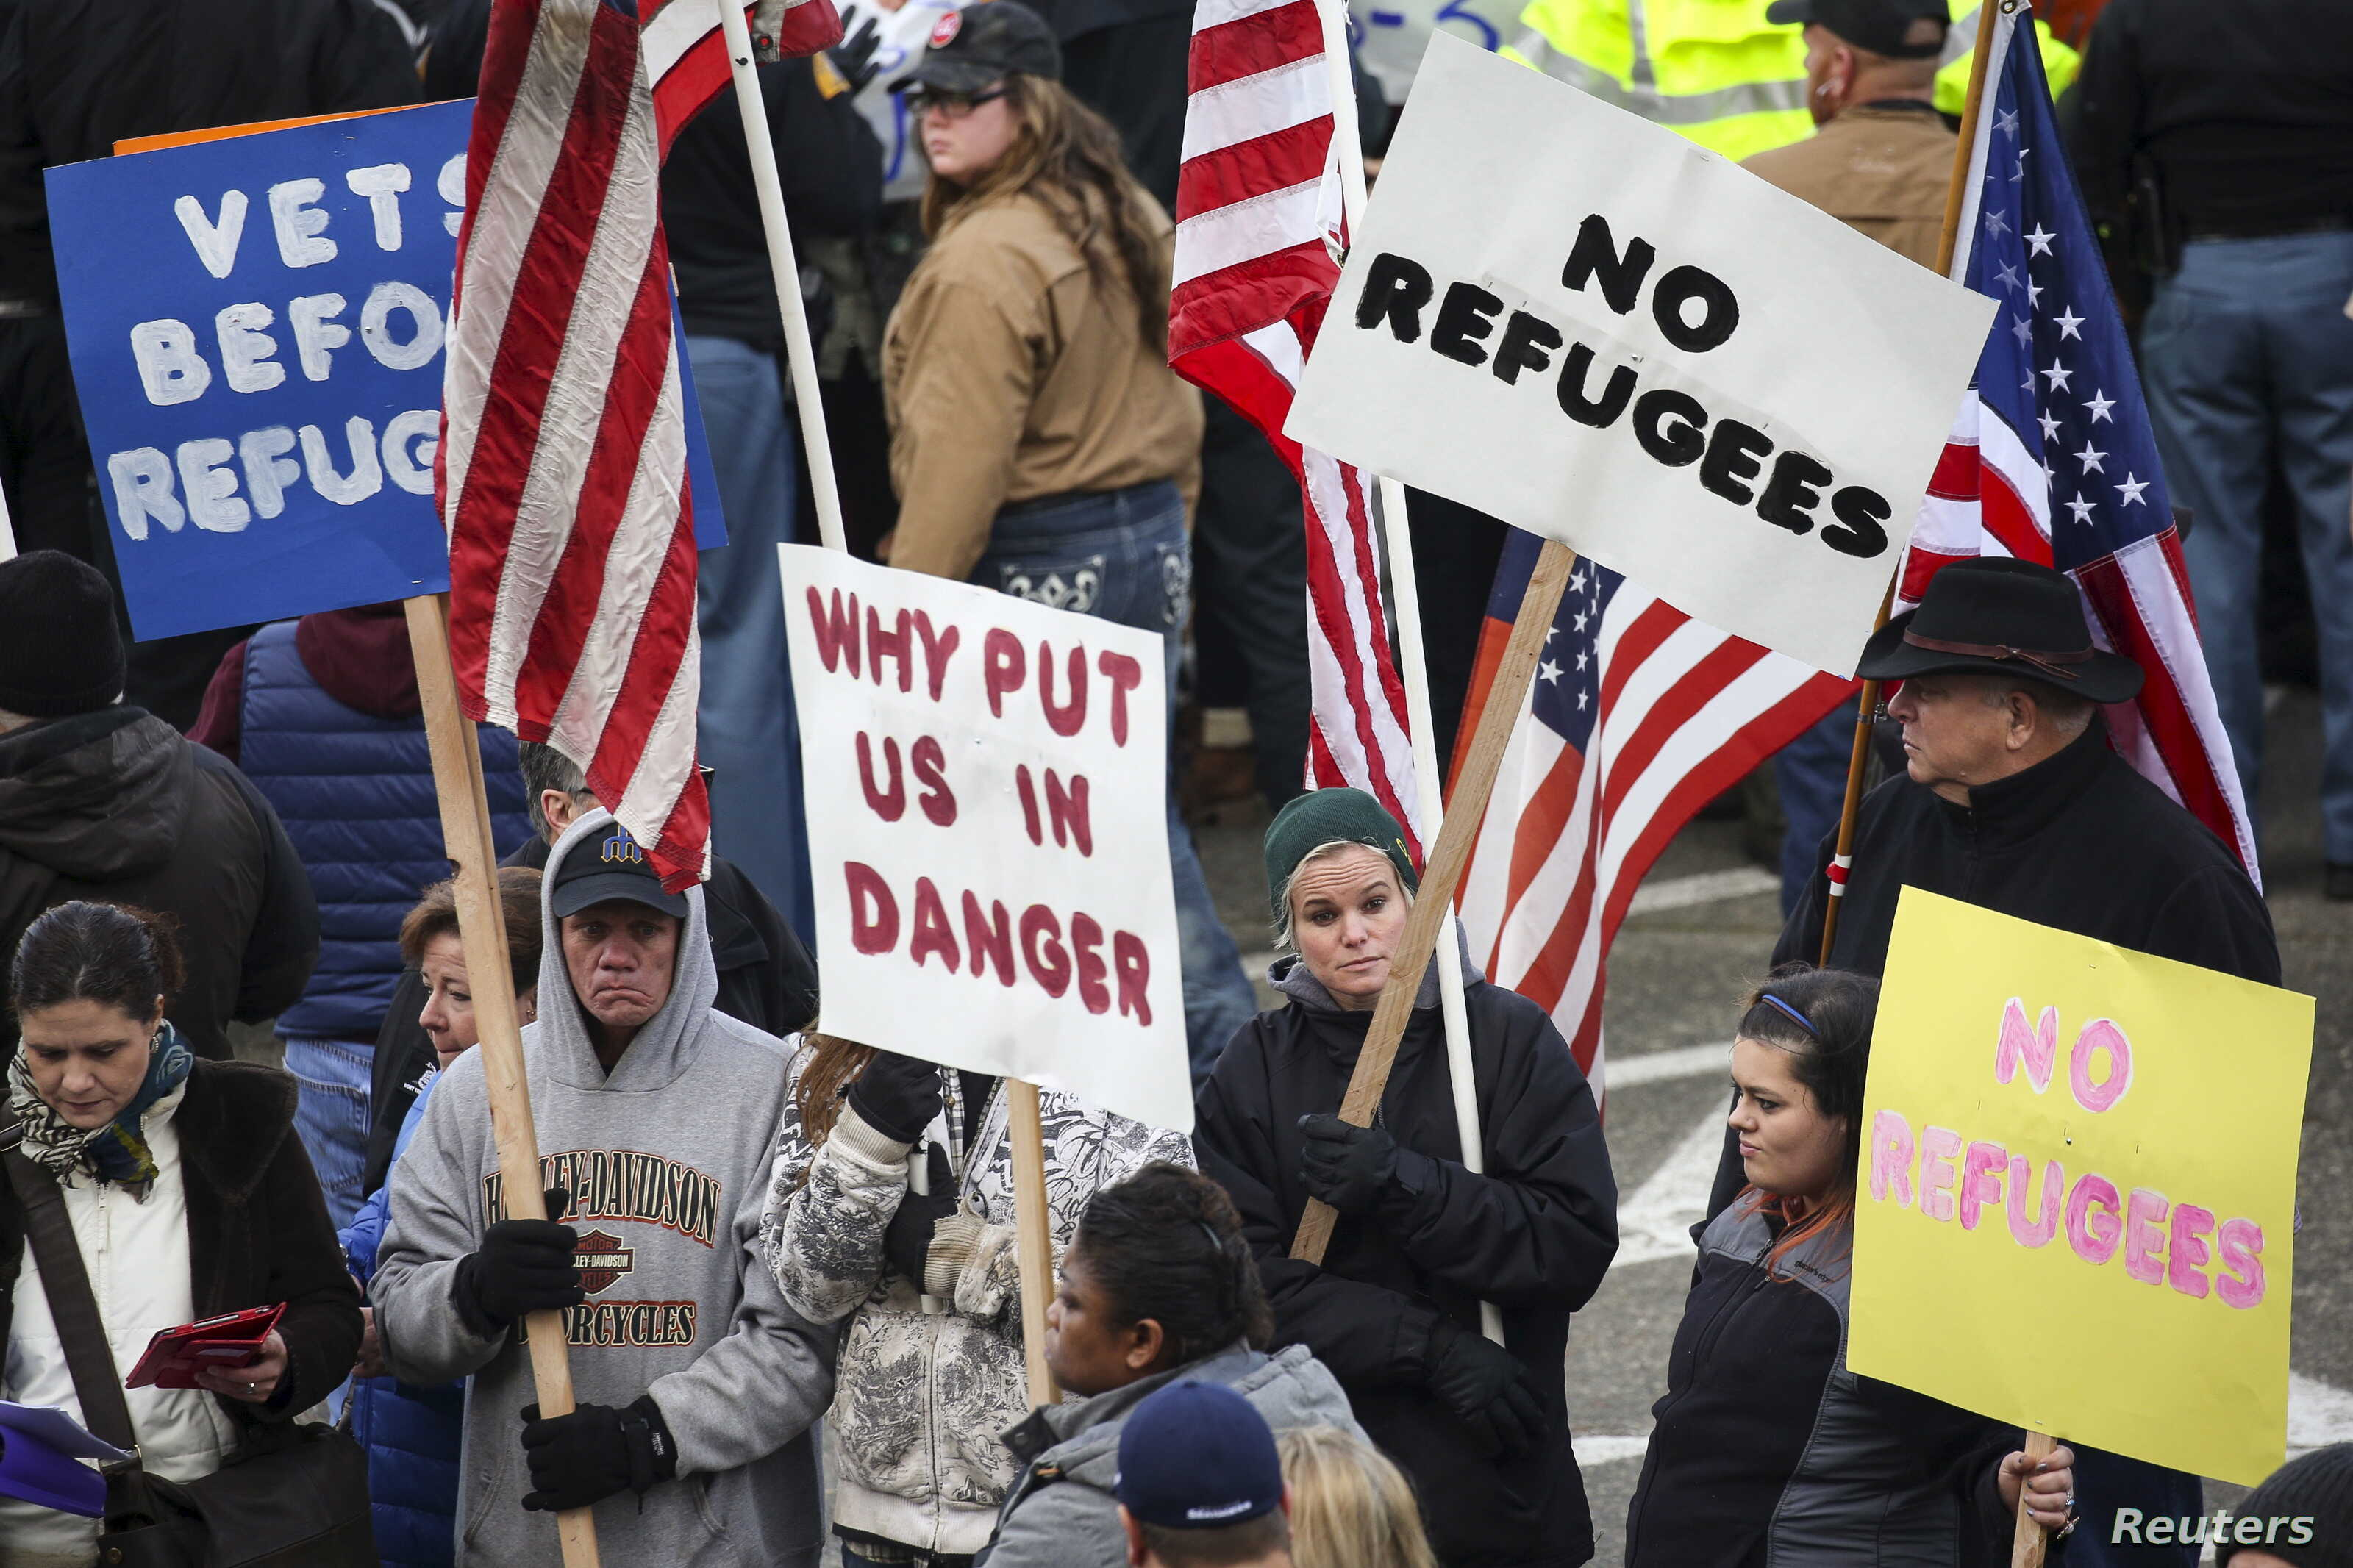 People gather to protest against the United States' acceptance of Syrian refugees at the Washington State capitol in Olympia, Washington, Nov. 20, 2015.